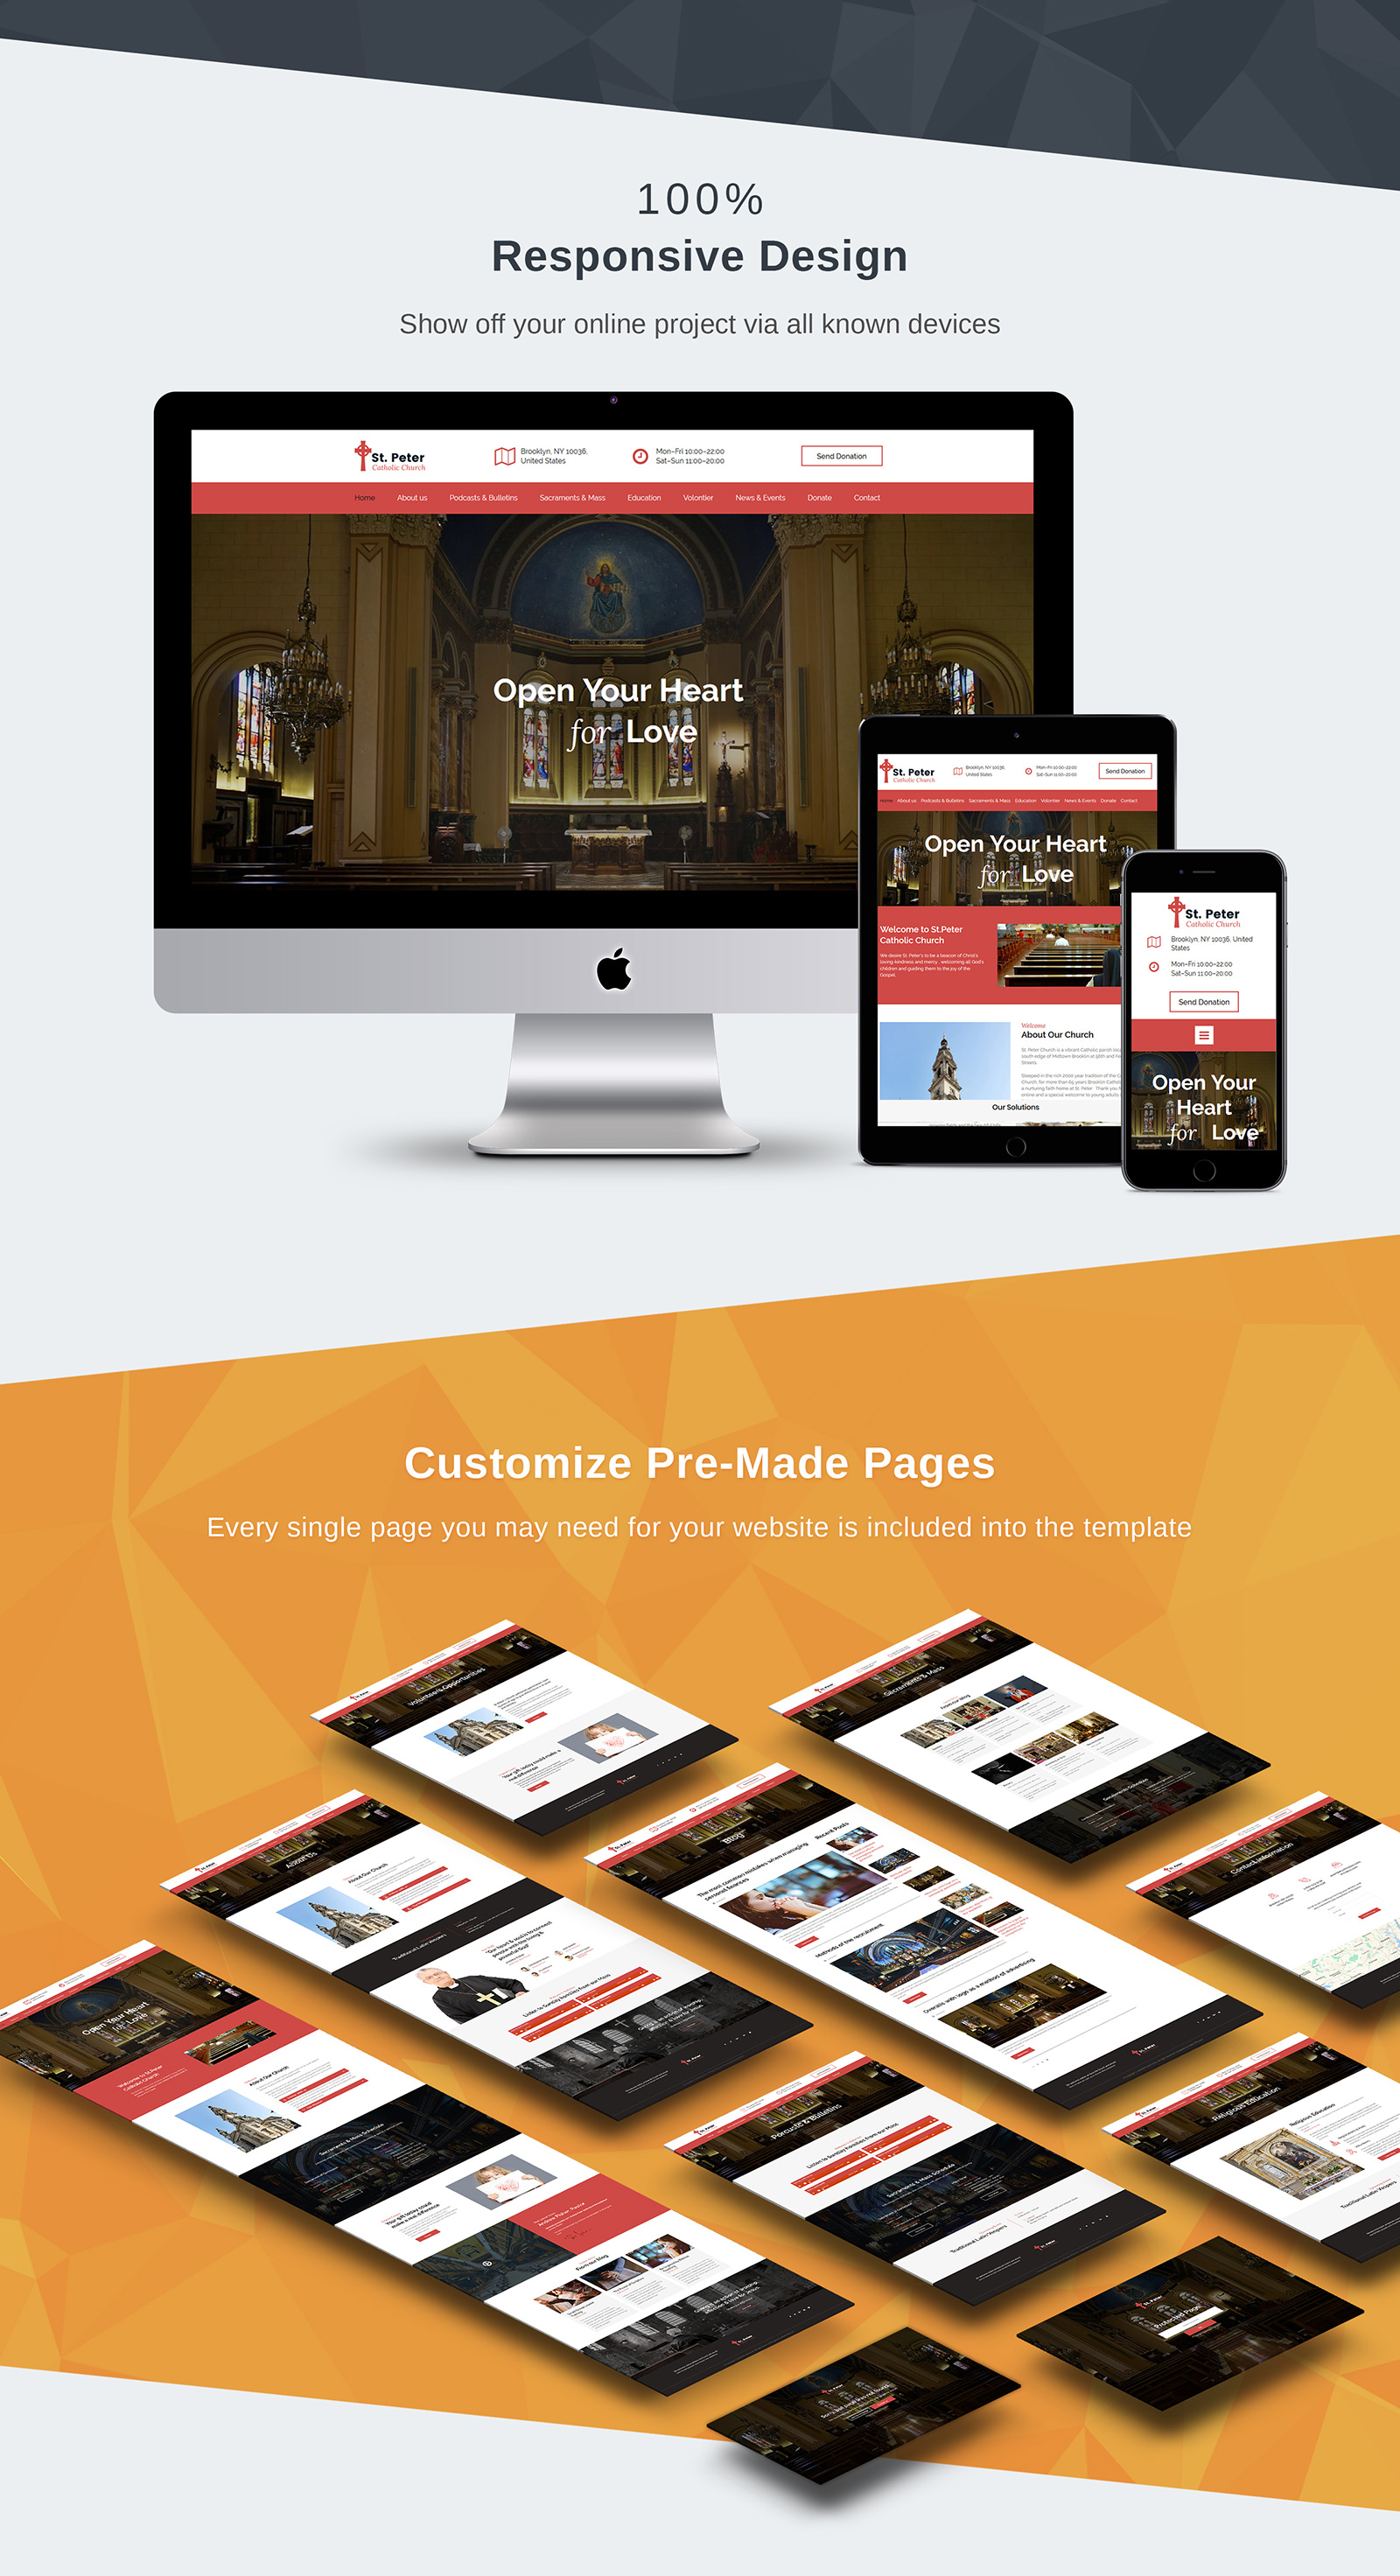 St. Peter - Catholic Church Moto CMS 3 Template